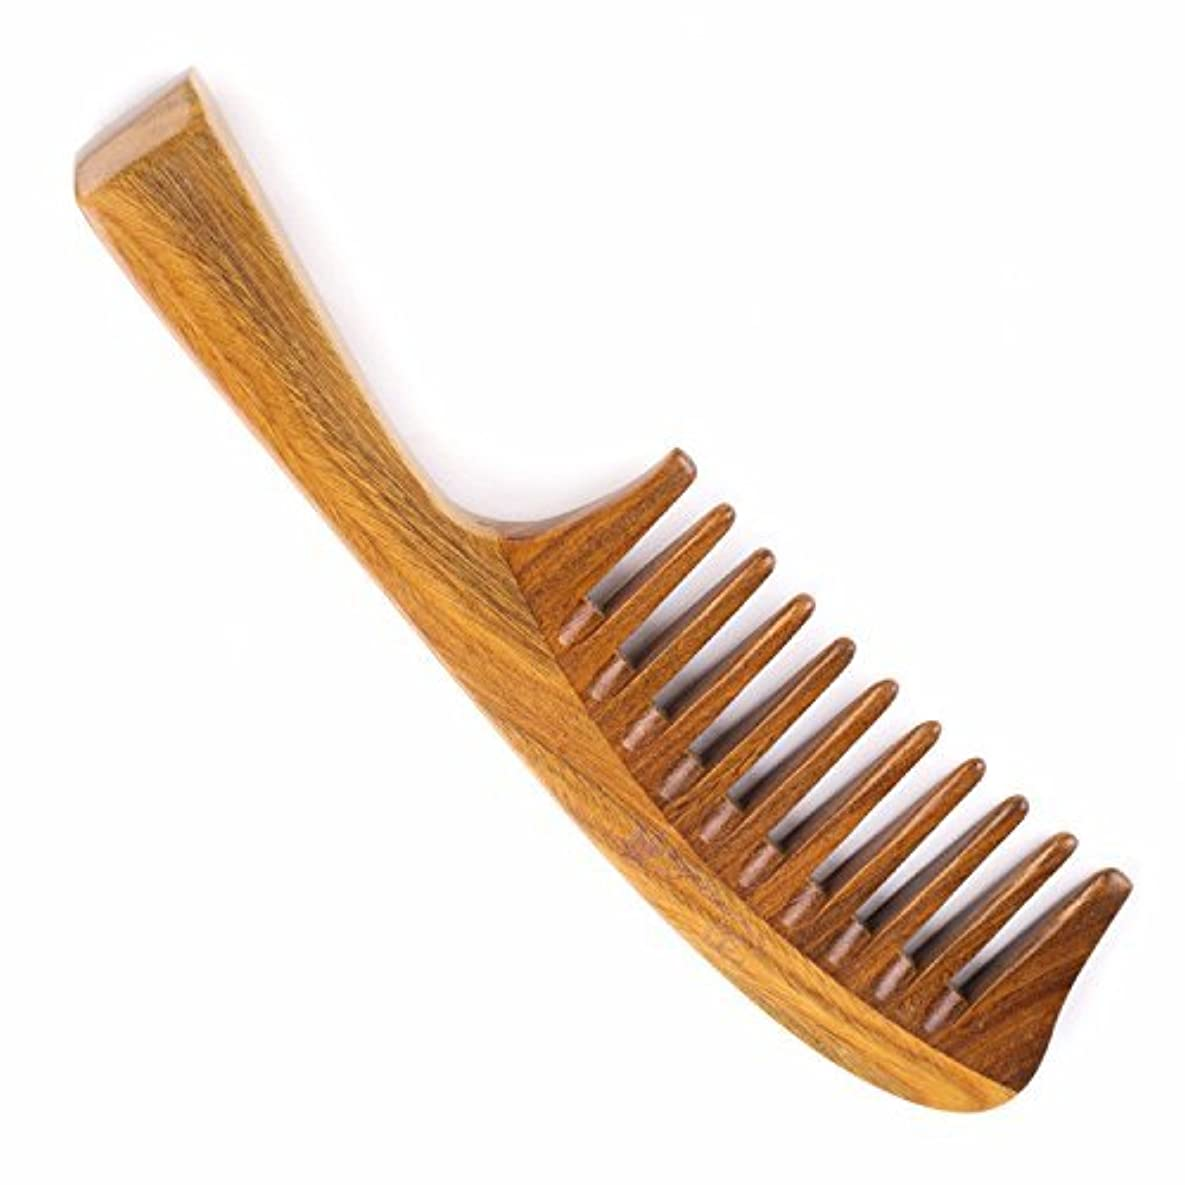 事件、出来事違反ラップHair Comb for Curly Hair - Breezelike Wide Tooth Sandalwood Comb - 8